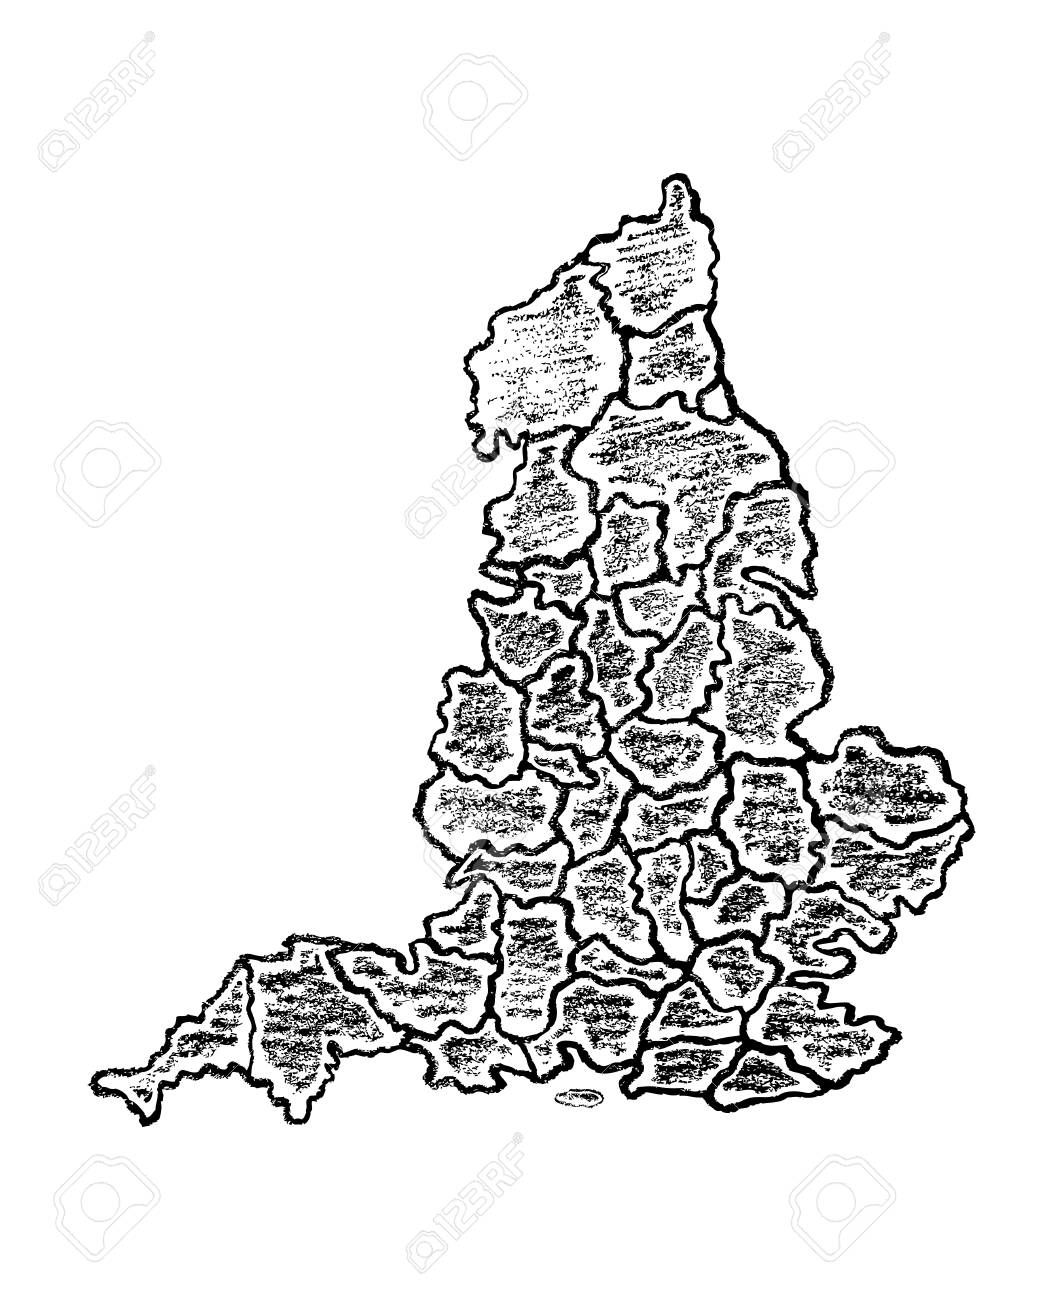 detailed hand drawn map of england with counties painted with UK Colleges Map detailed hand drawn map of england with counties painted with pencils black and white illustration